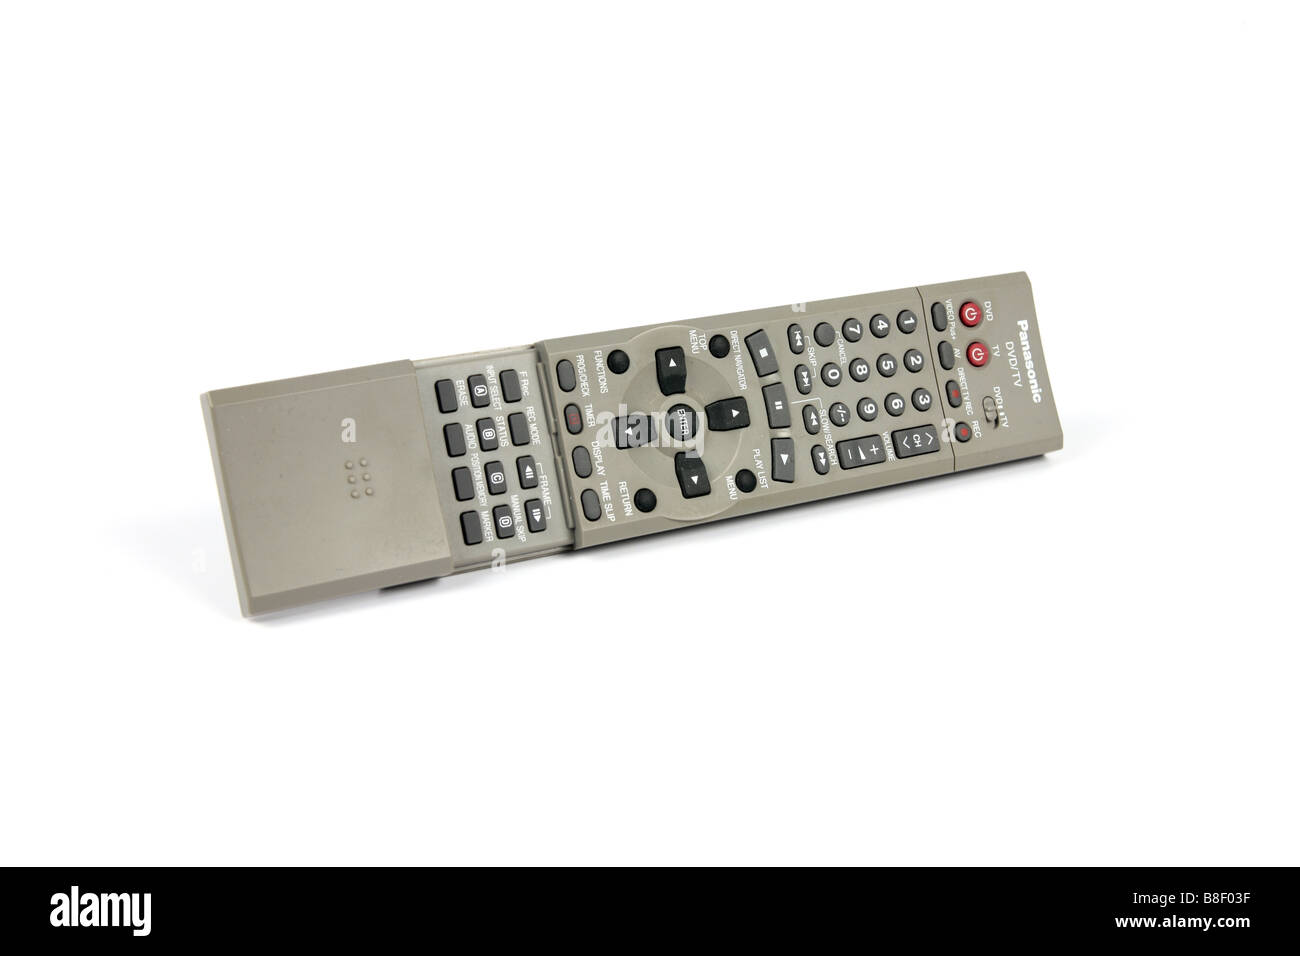 A DVD Blu Ray TV Recorder Wireless hand held Remote control unit against a white background - Stock Image